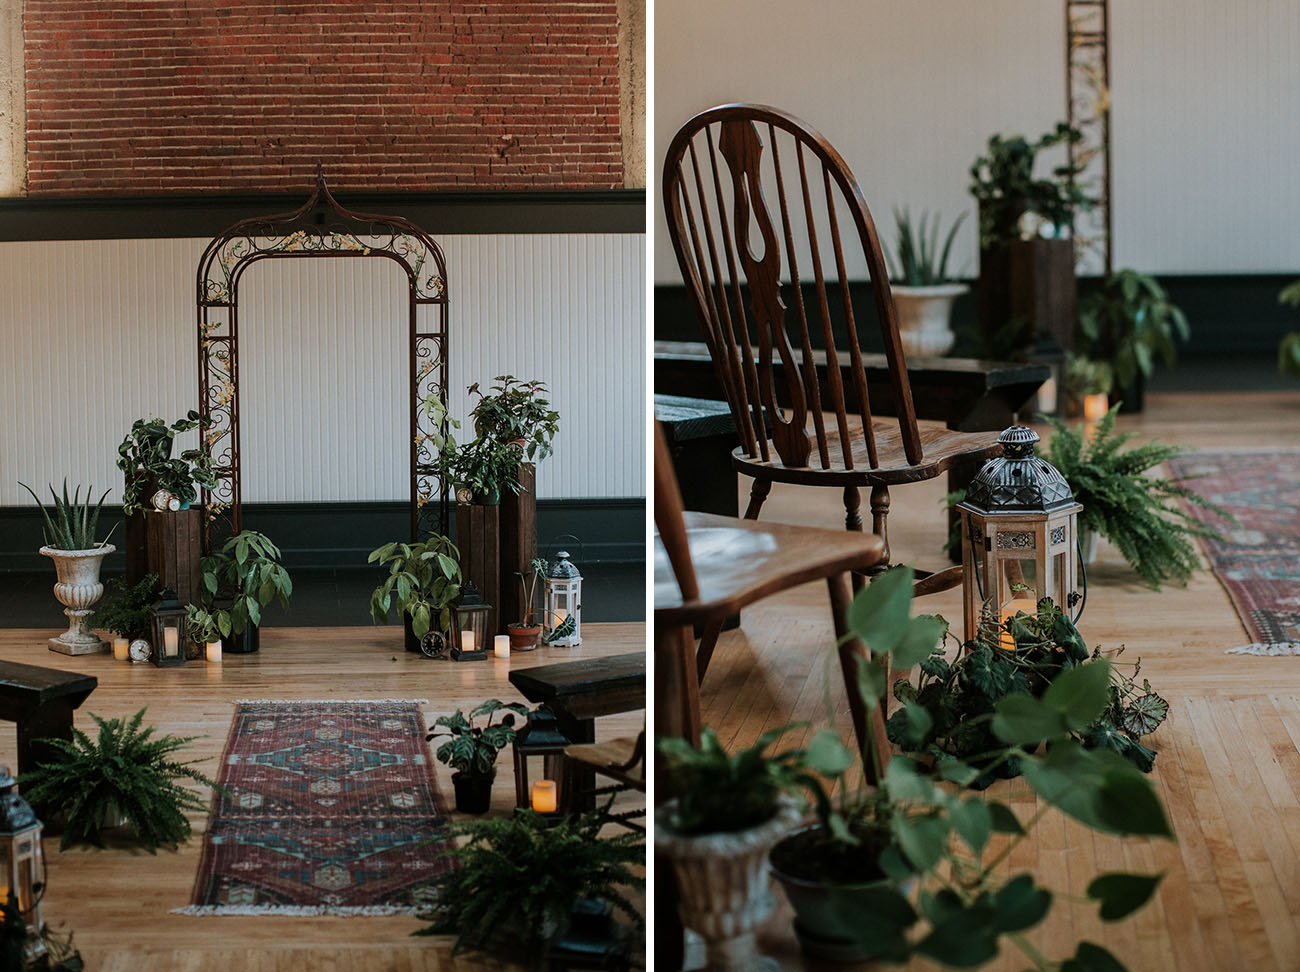 Moody masculine ceremony decor with dark wood and plants